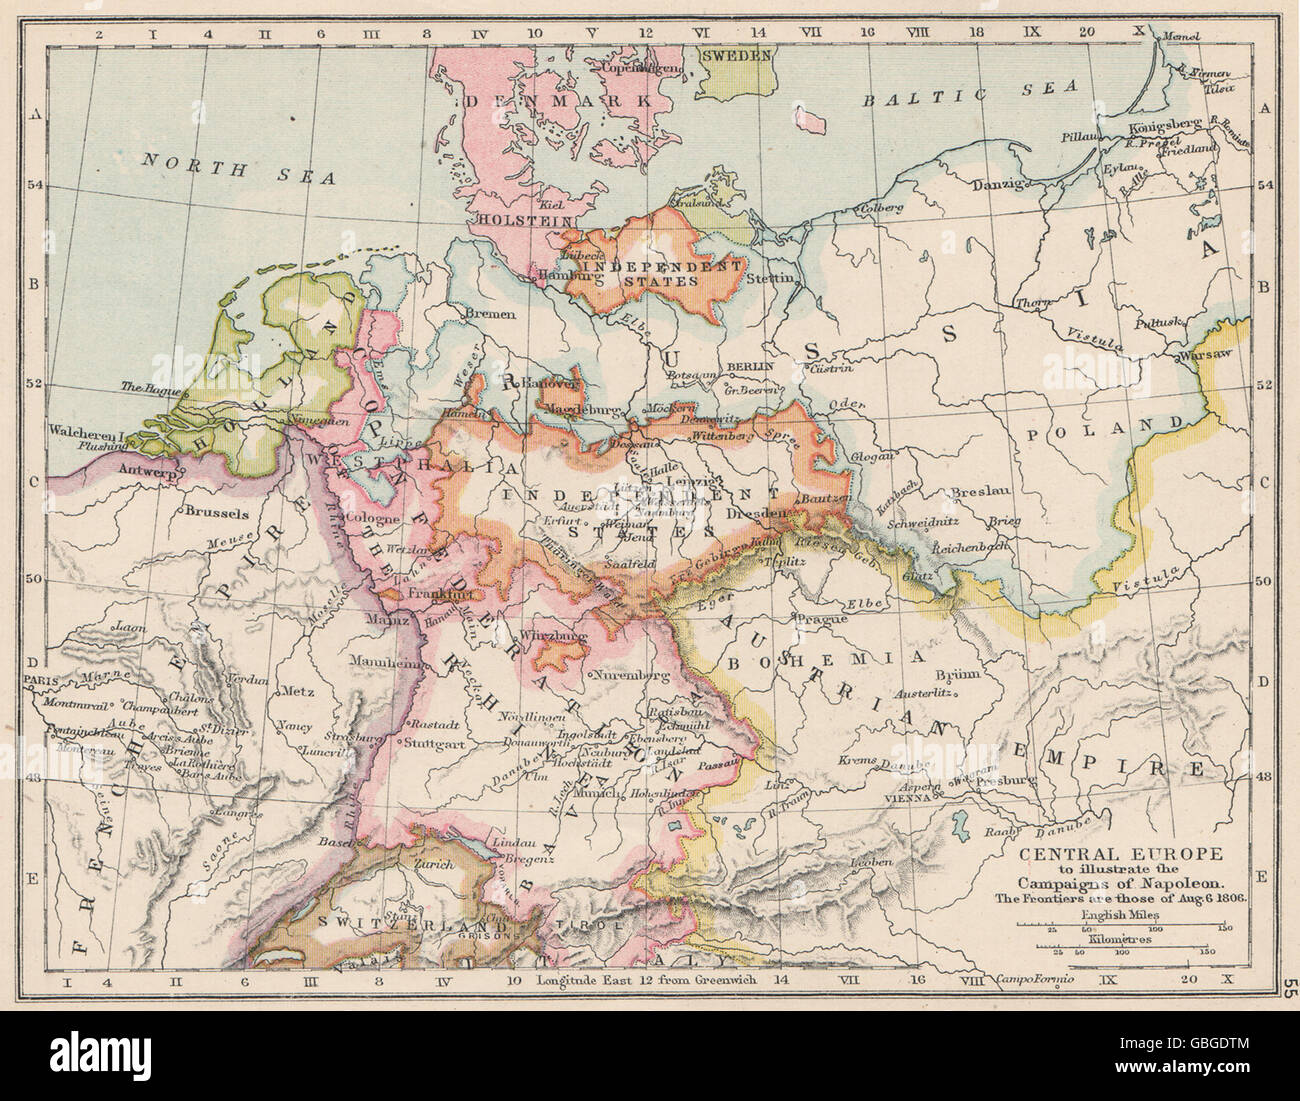 CENTRAL EUROPE:illustrating Napoleon's campaigns.1806 frontiers.Battles 1907 map - Stock Image